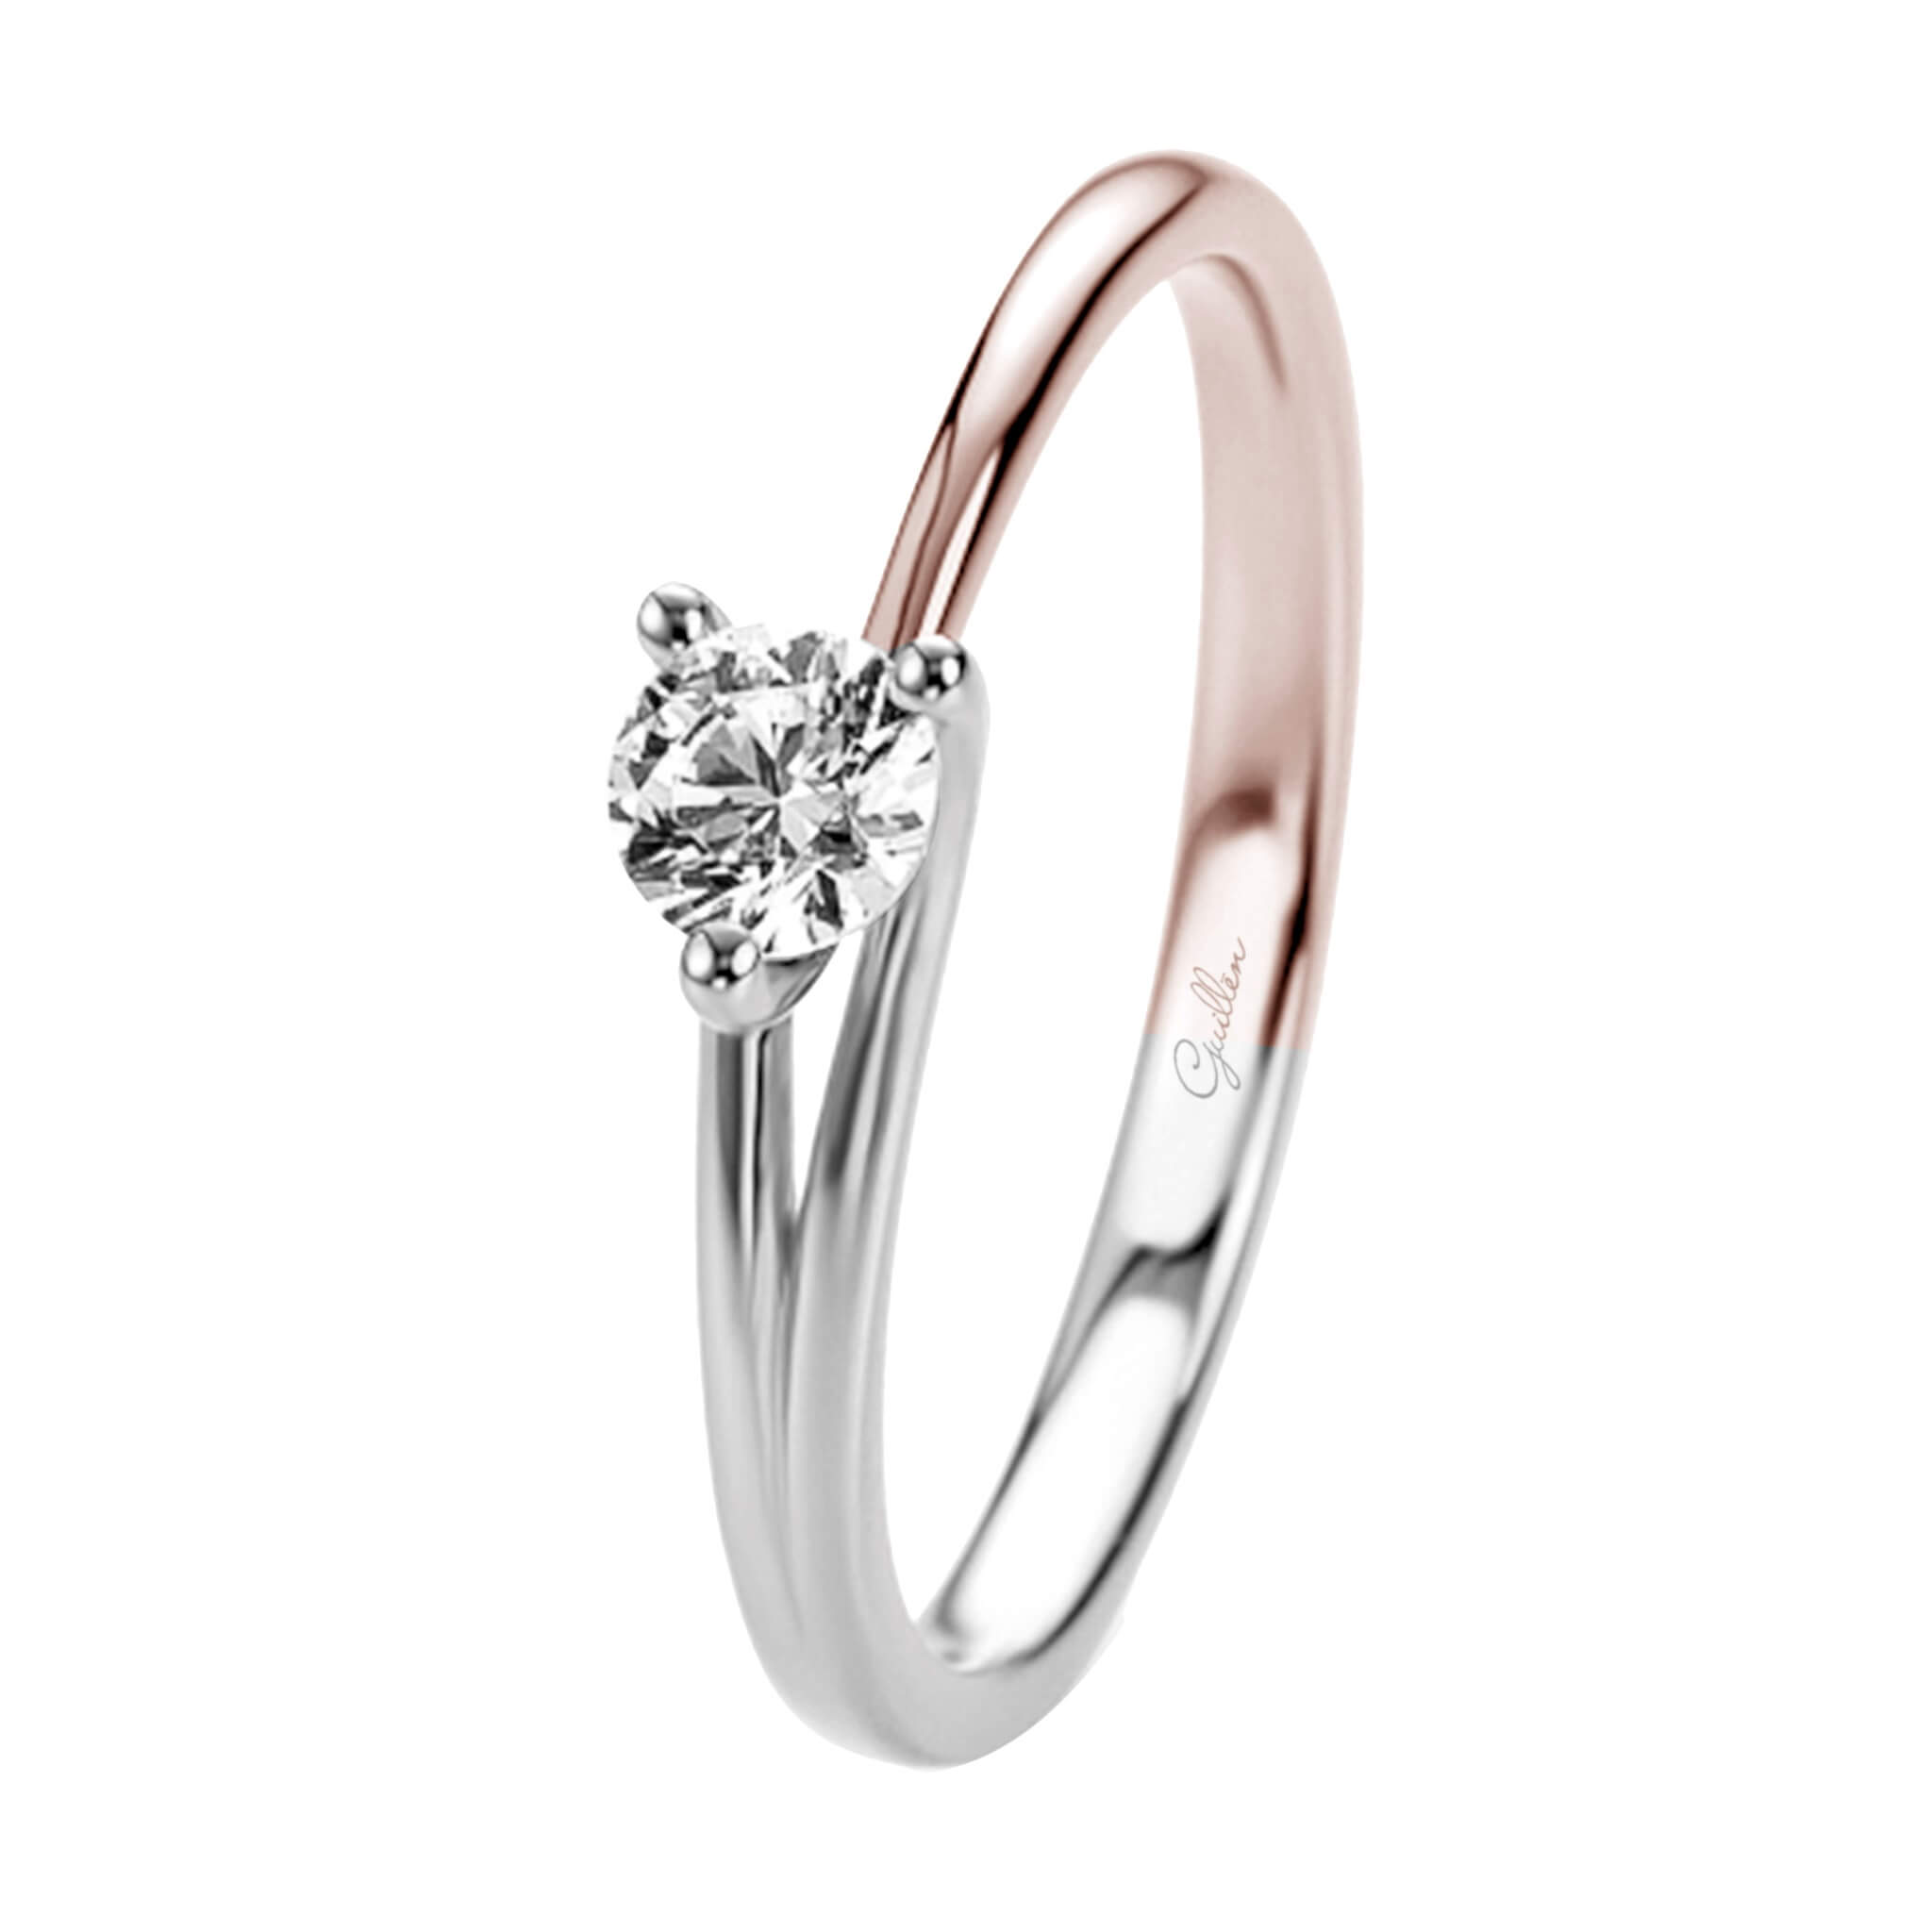 Anillo de compromiso ideal Virgo